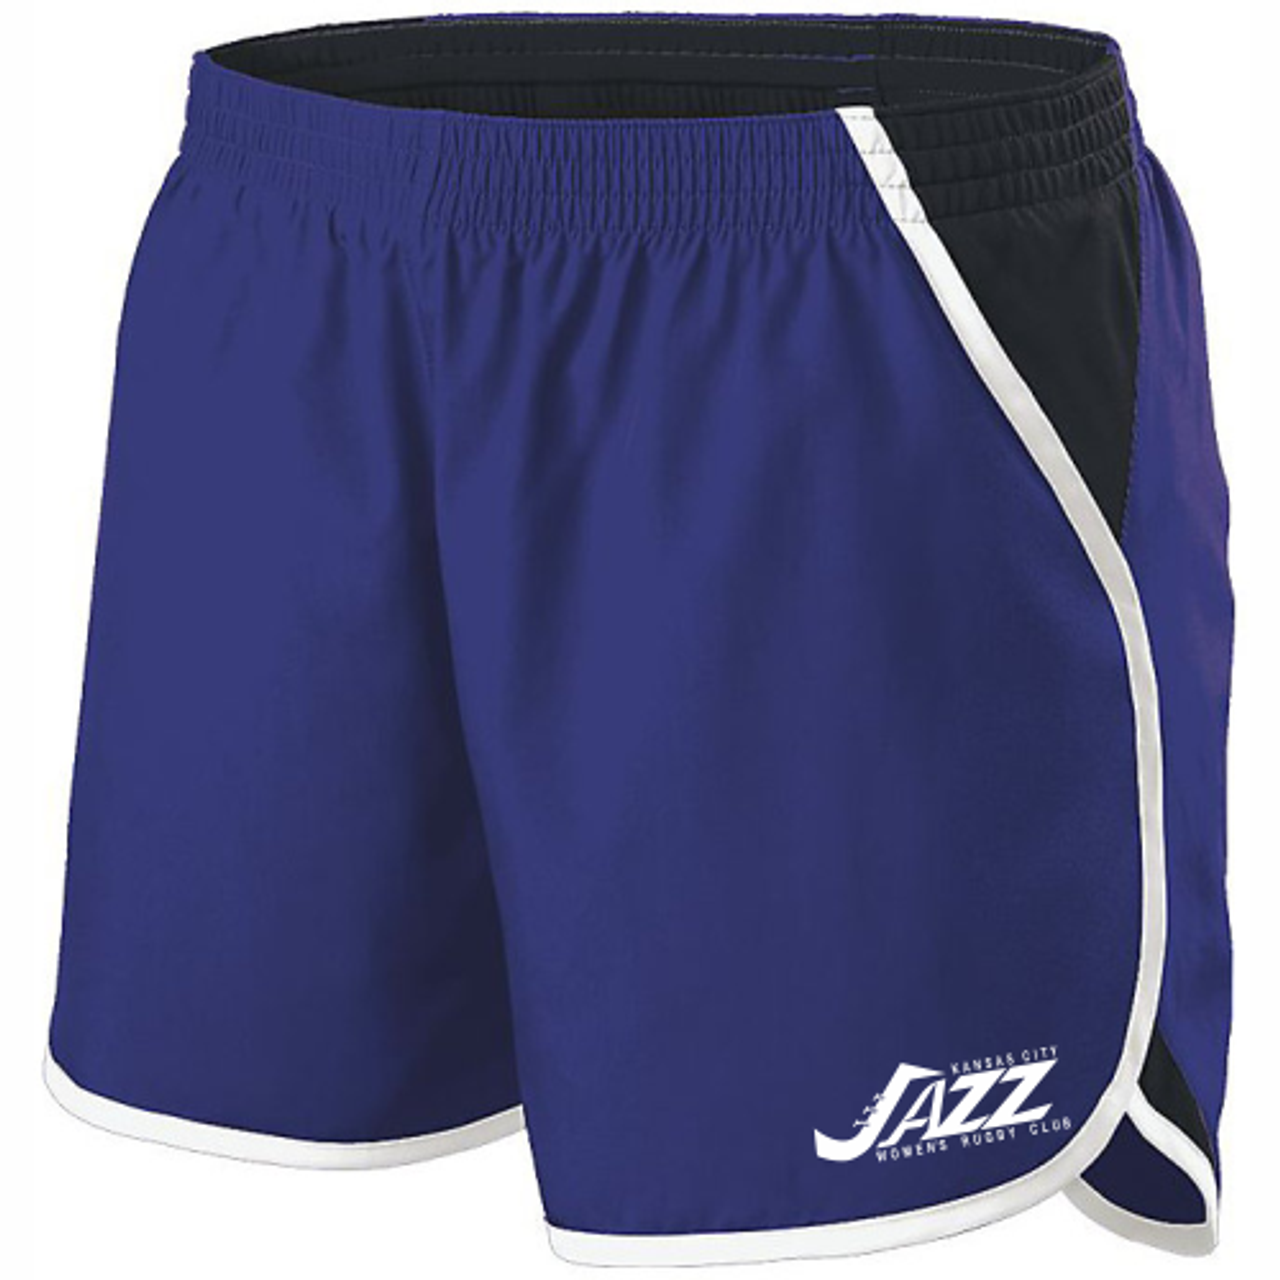 KC Jazz Ladies-Cut Gym Short, Purple